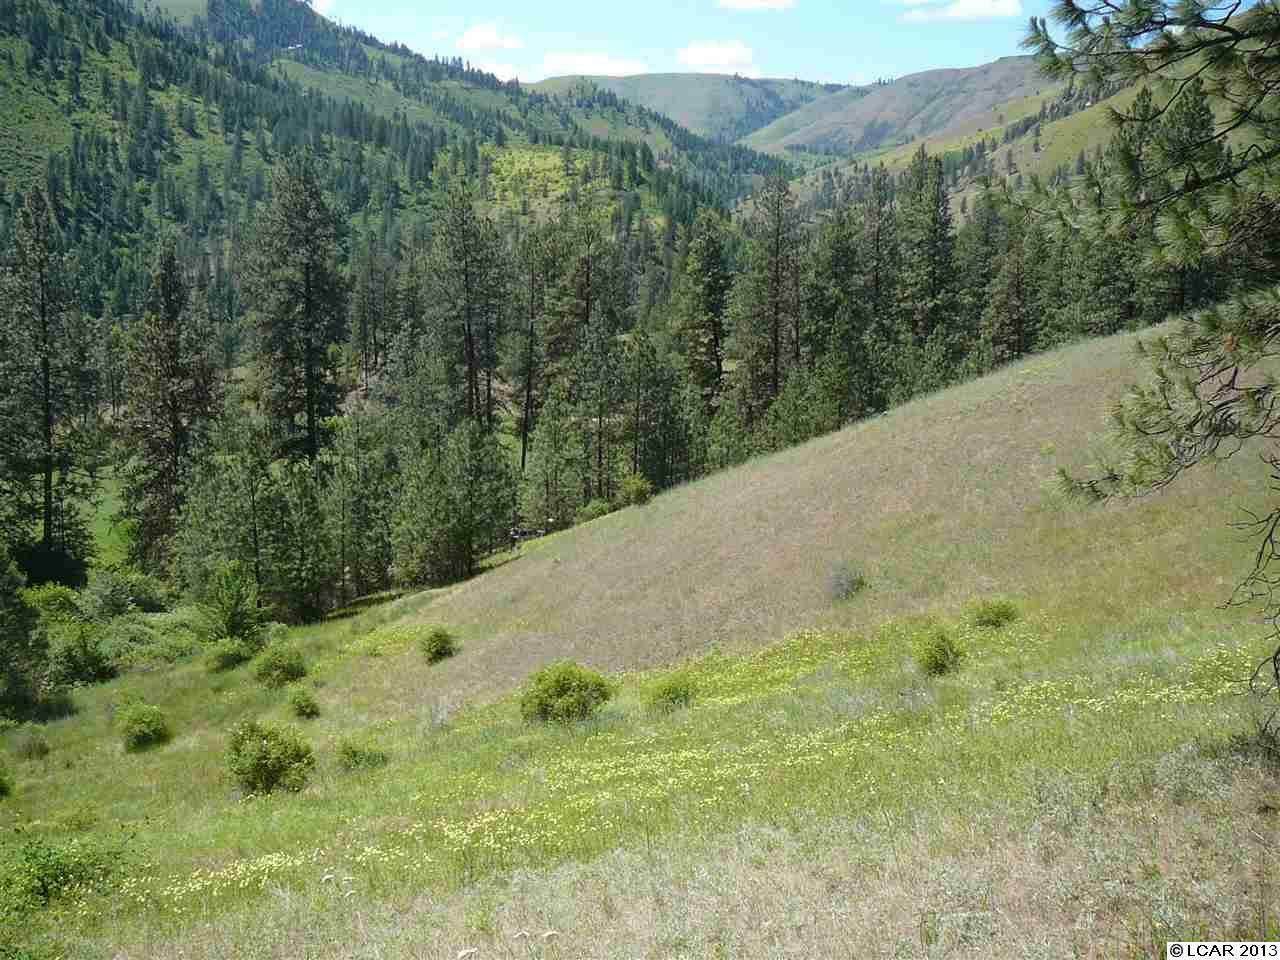 Tbd Pardee Rd, Kamiah, ID - USA (photo 1)